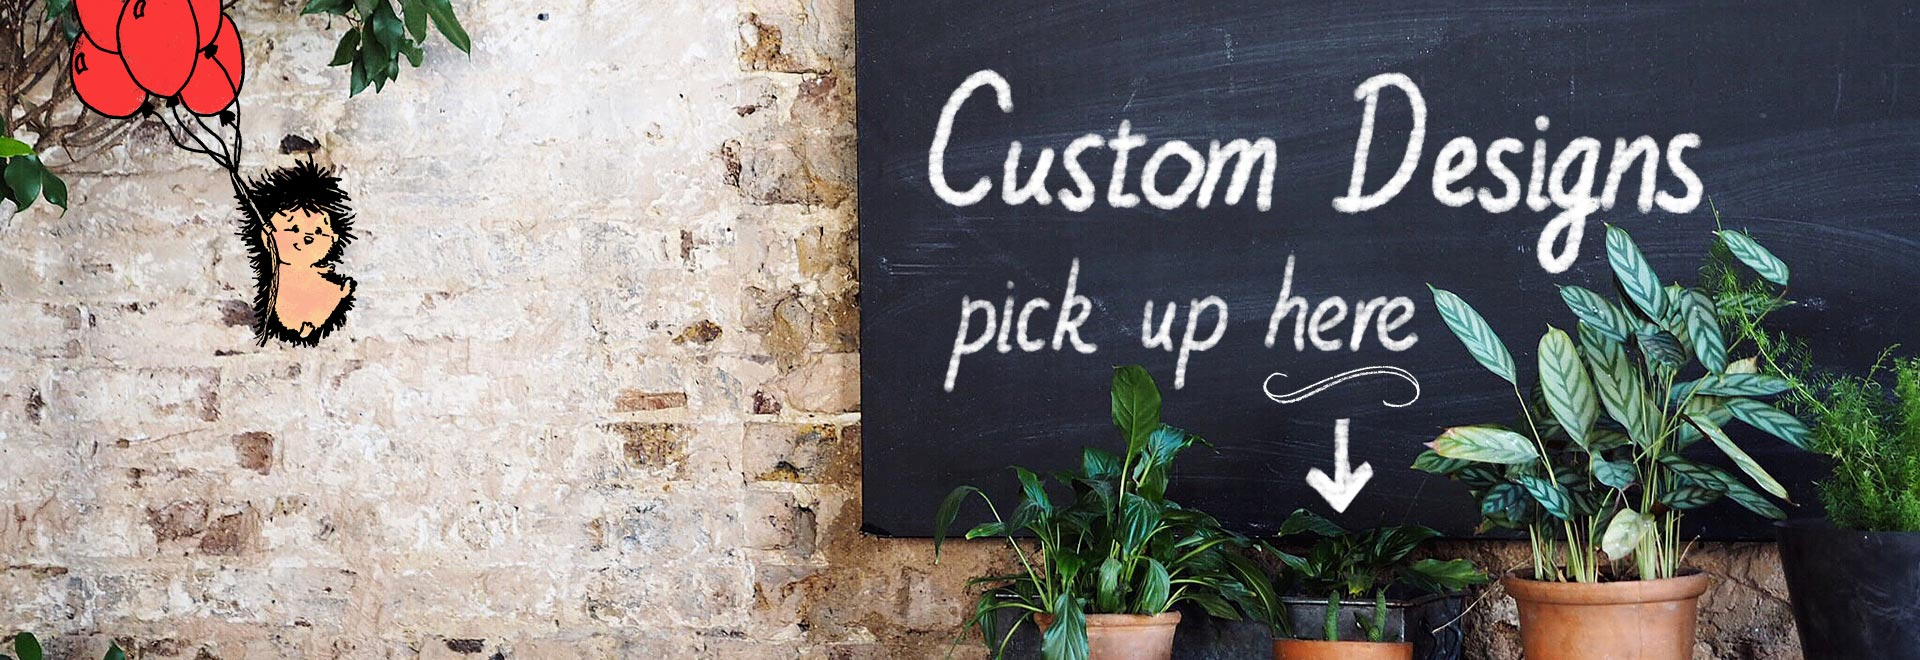 "A chalkboard on a brick wall with text ""Custom Designs"""